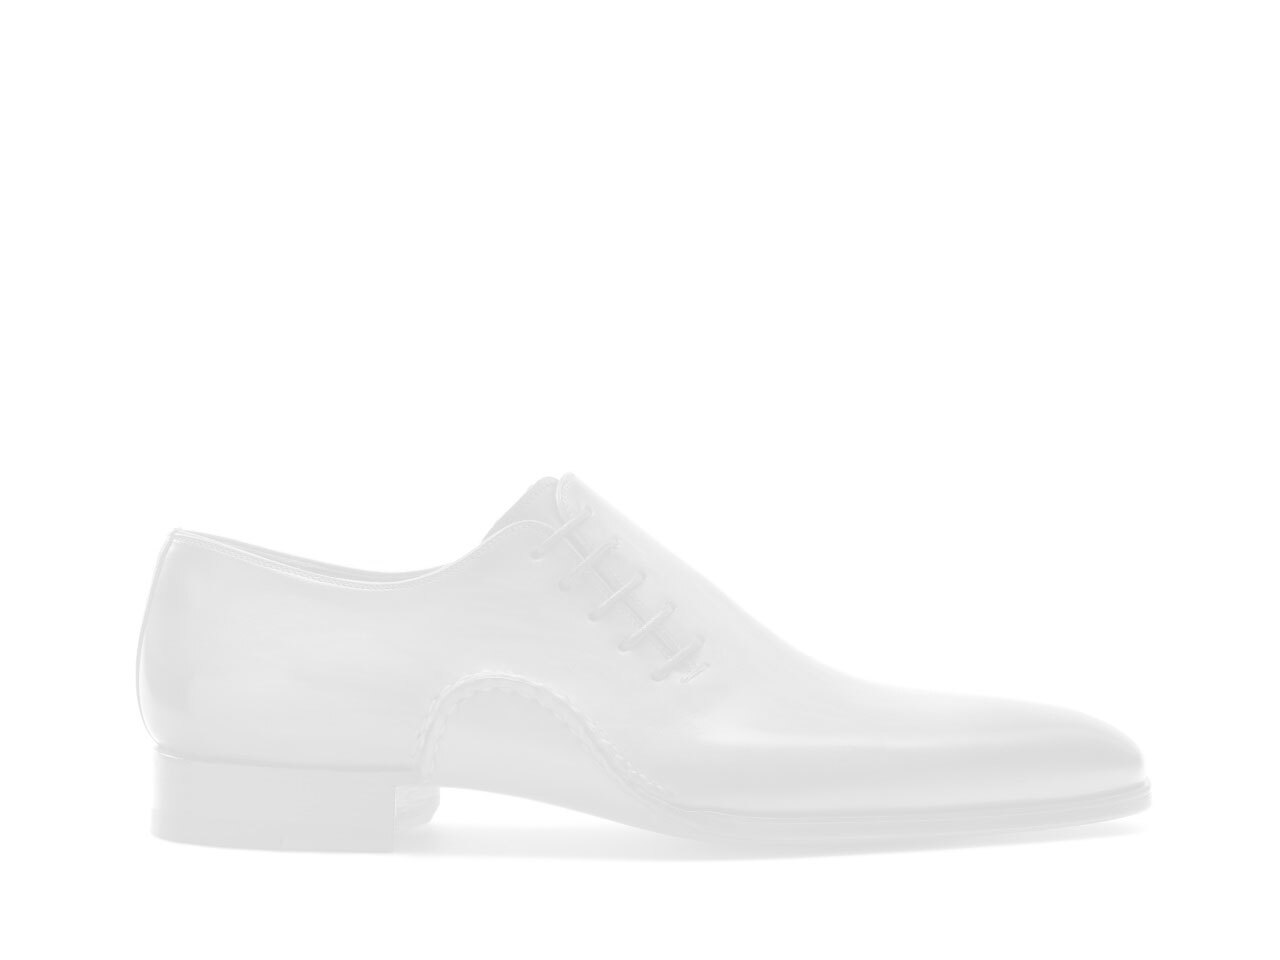 Side view of the Magnanni Reina II White Men's Sneakers